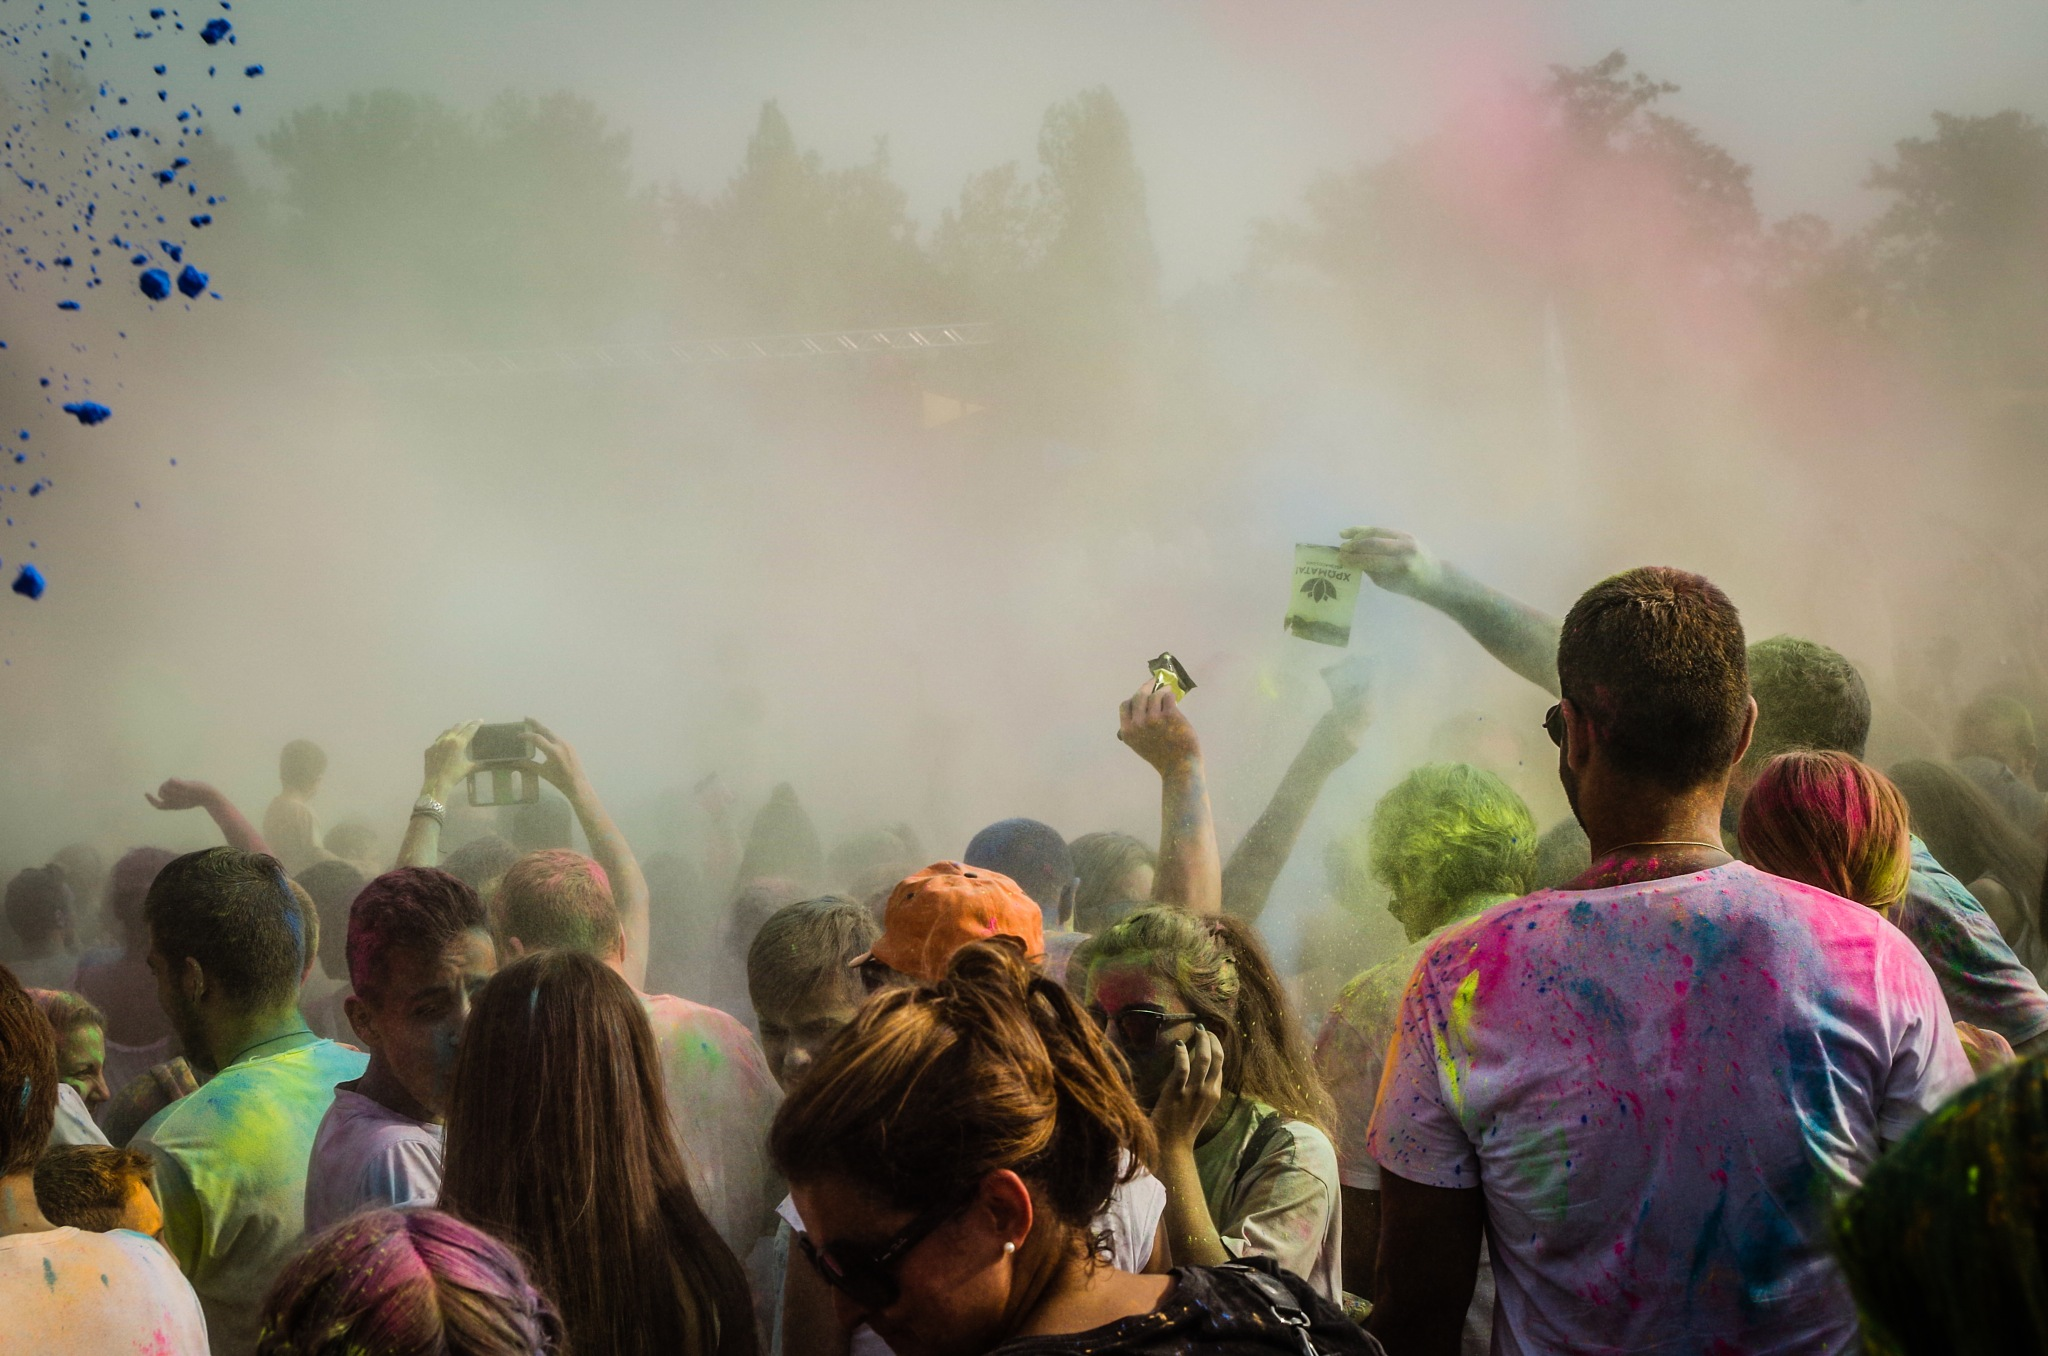 Color Festival - Get Wrecked  by DeckArts